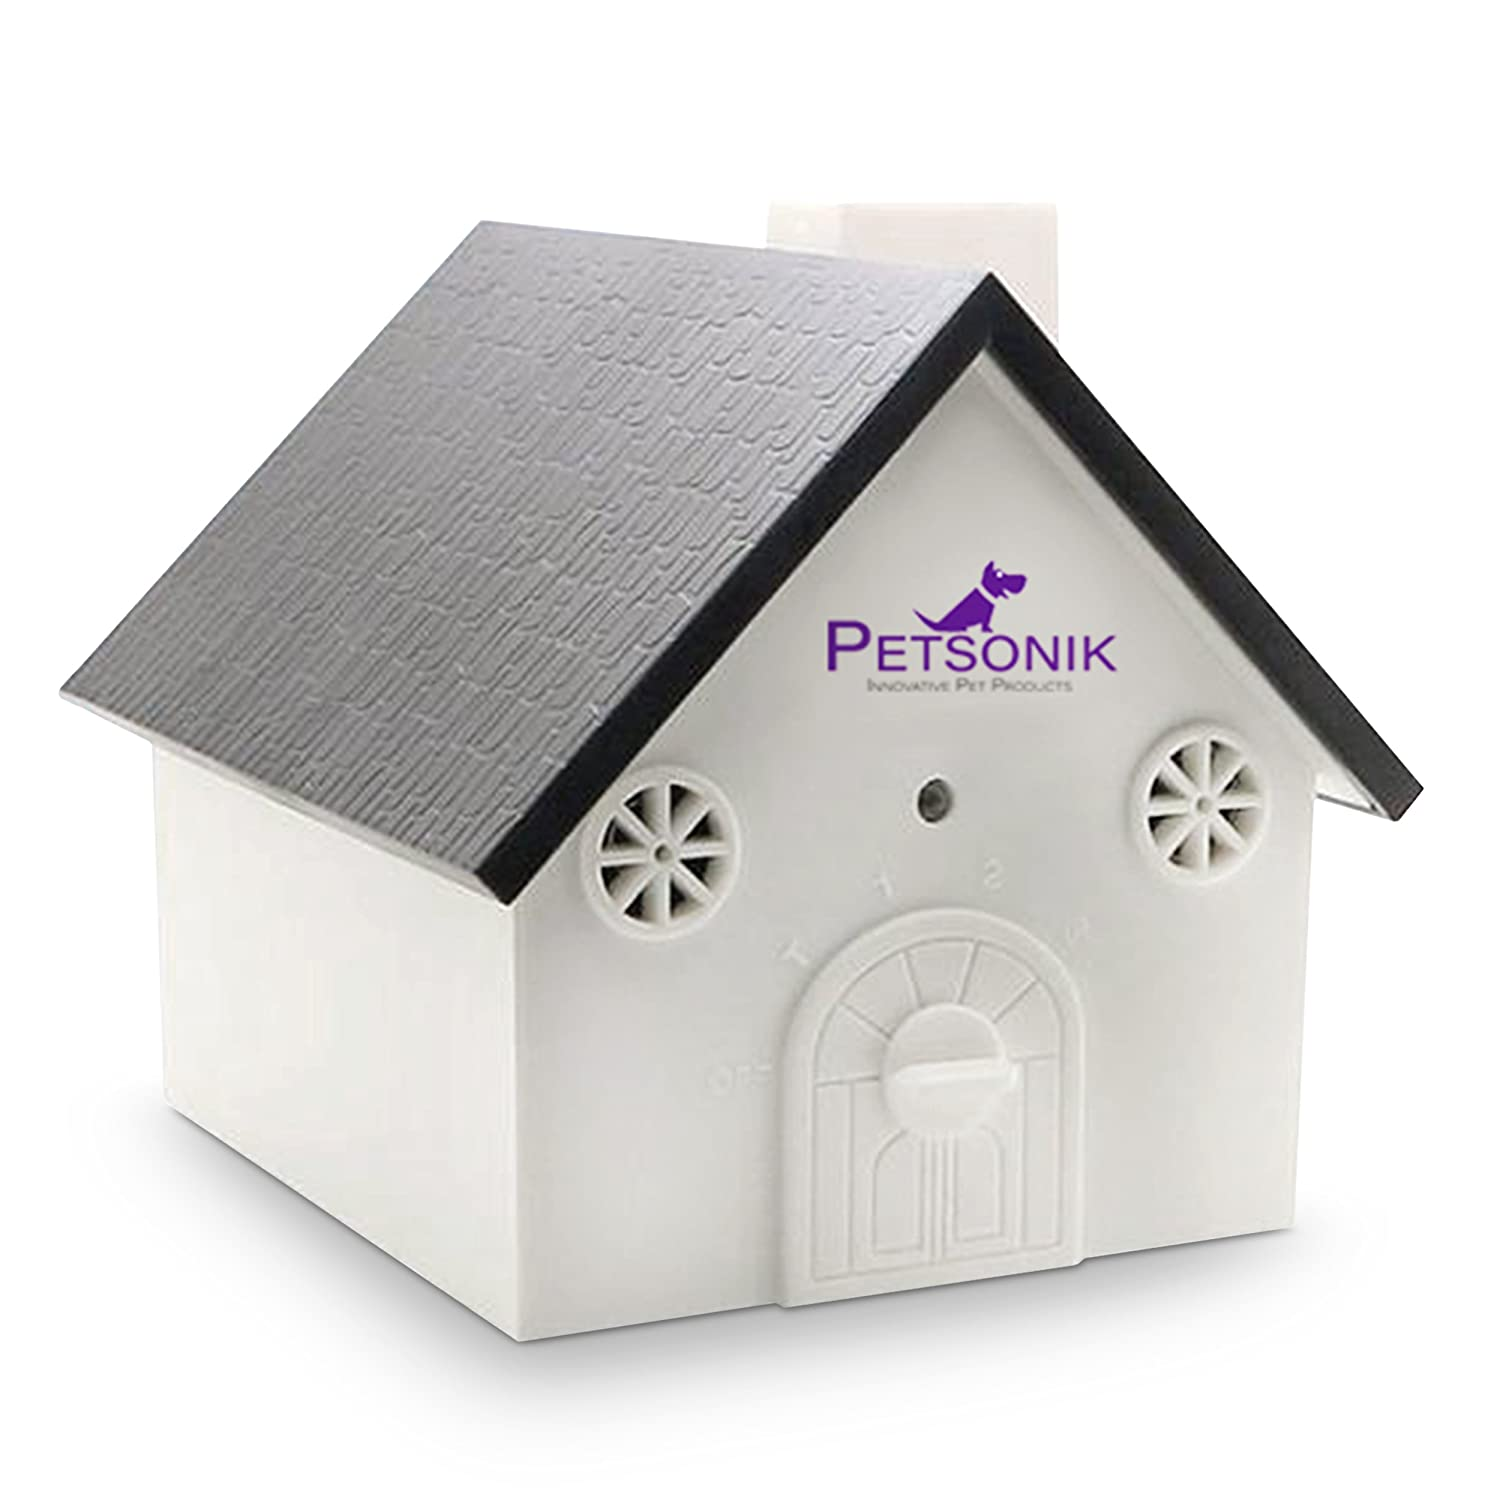 PETSONIK Ultrasonic Outdoor Dog Bark Controller Sonic Bark Deterrent in Newest Birdhouse Shape, No Harm to Dog or Other Pets, Plant, Human, Easy Hanging Mounting On Tree, Wall, Or Fence Post